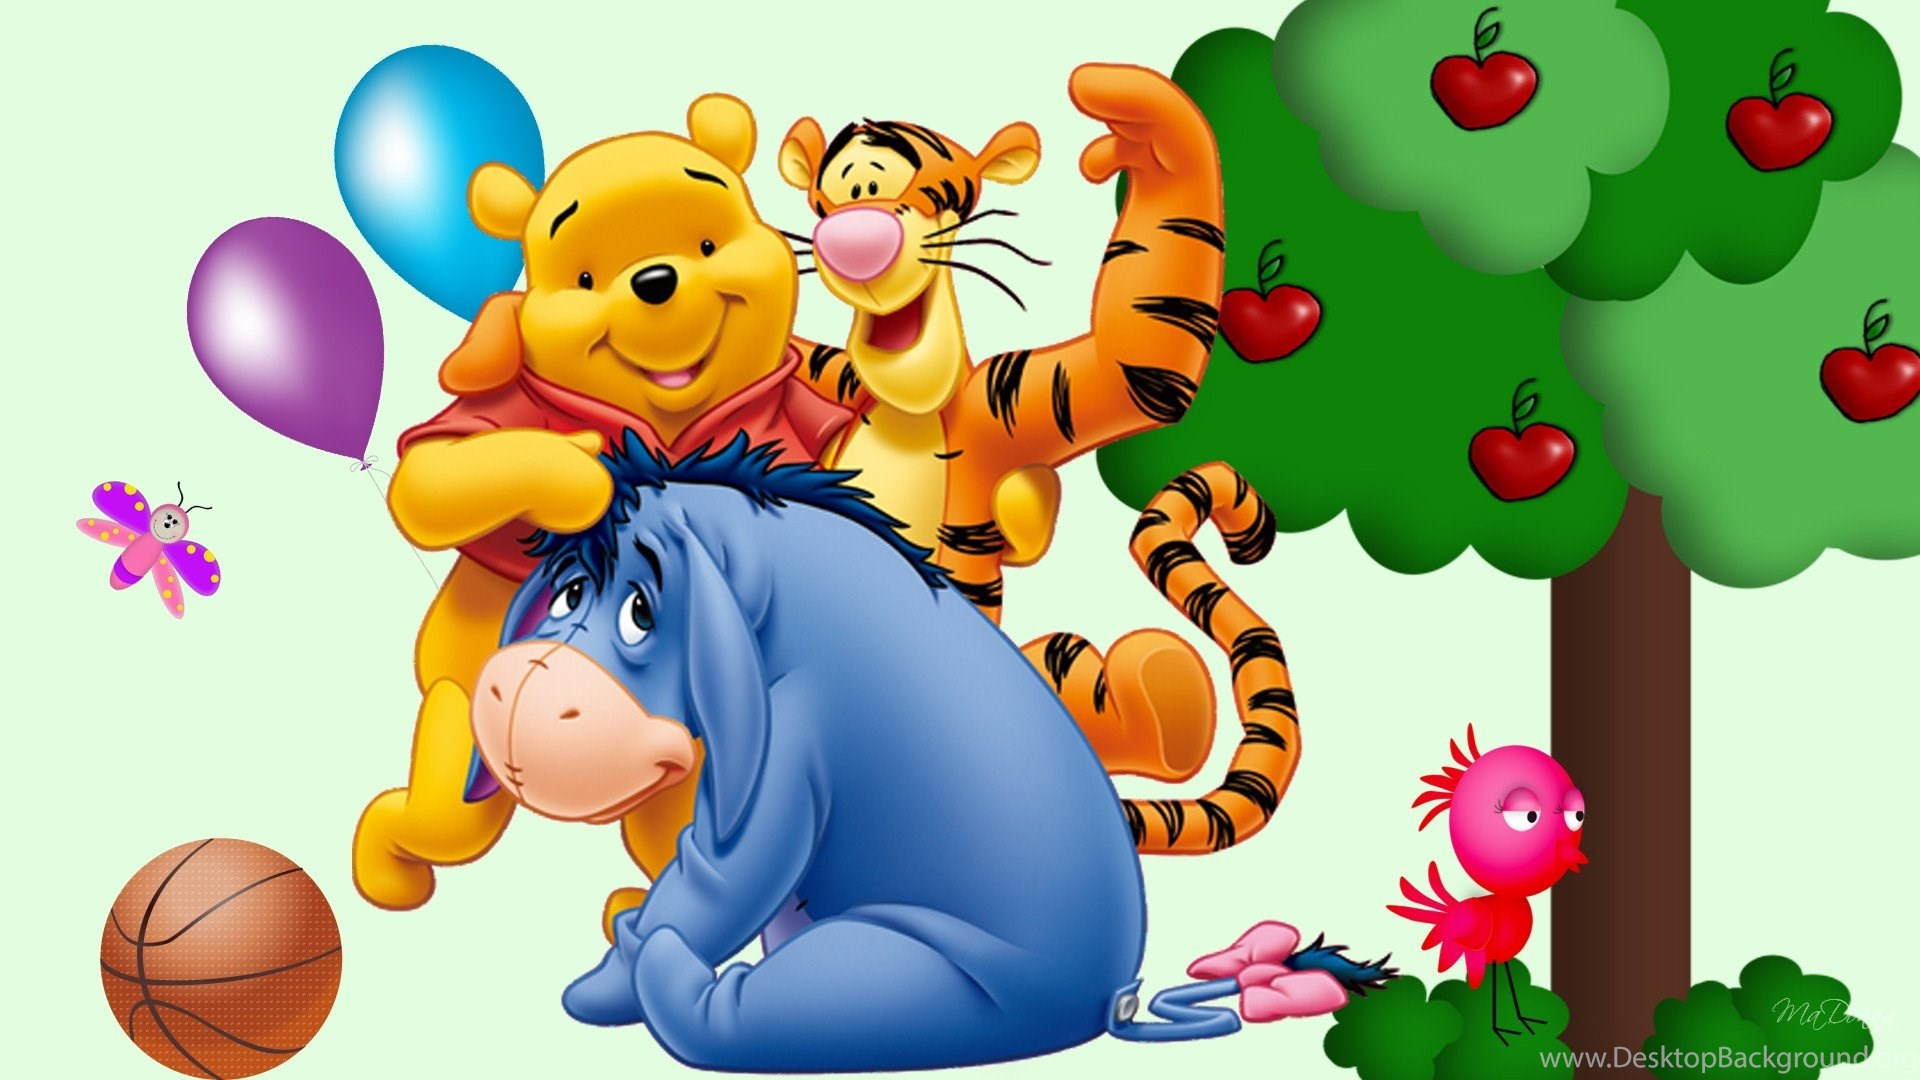 Winnie The Pooh Wallpapers For Android 41229 Desktop Wallpapers